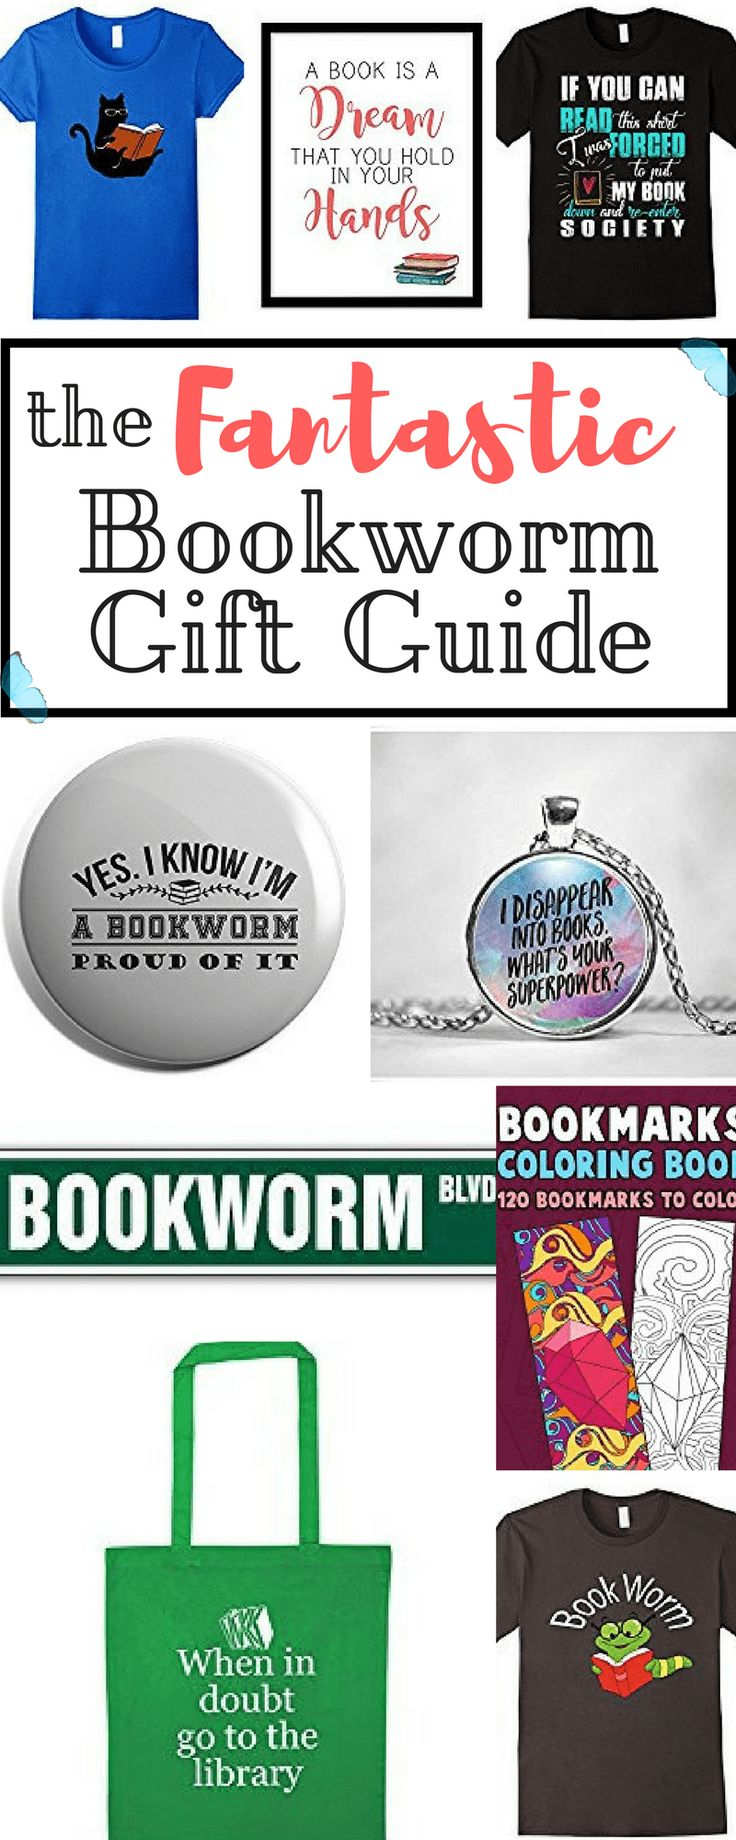 Do you know a bookworm that is in dire need of new stuff? Or are you a bookworm just like me in need of some cool presents that would go well with your reading mania? Here's the fantastic bookworm gift guide made especially for you!